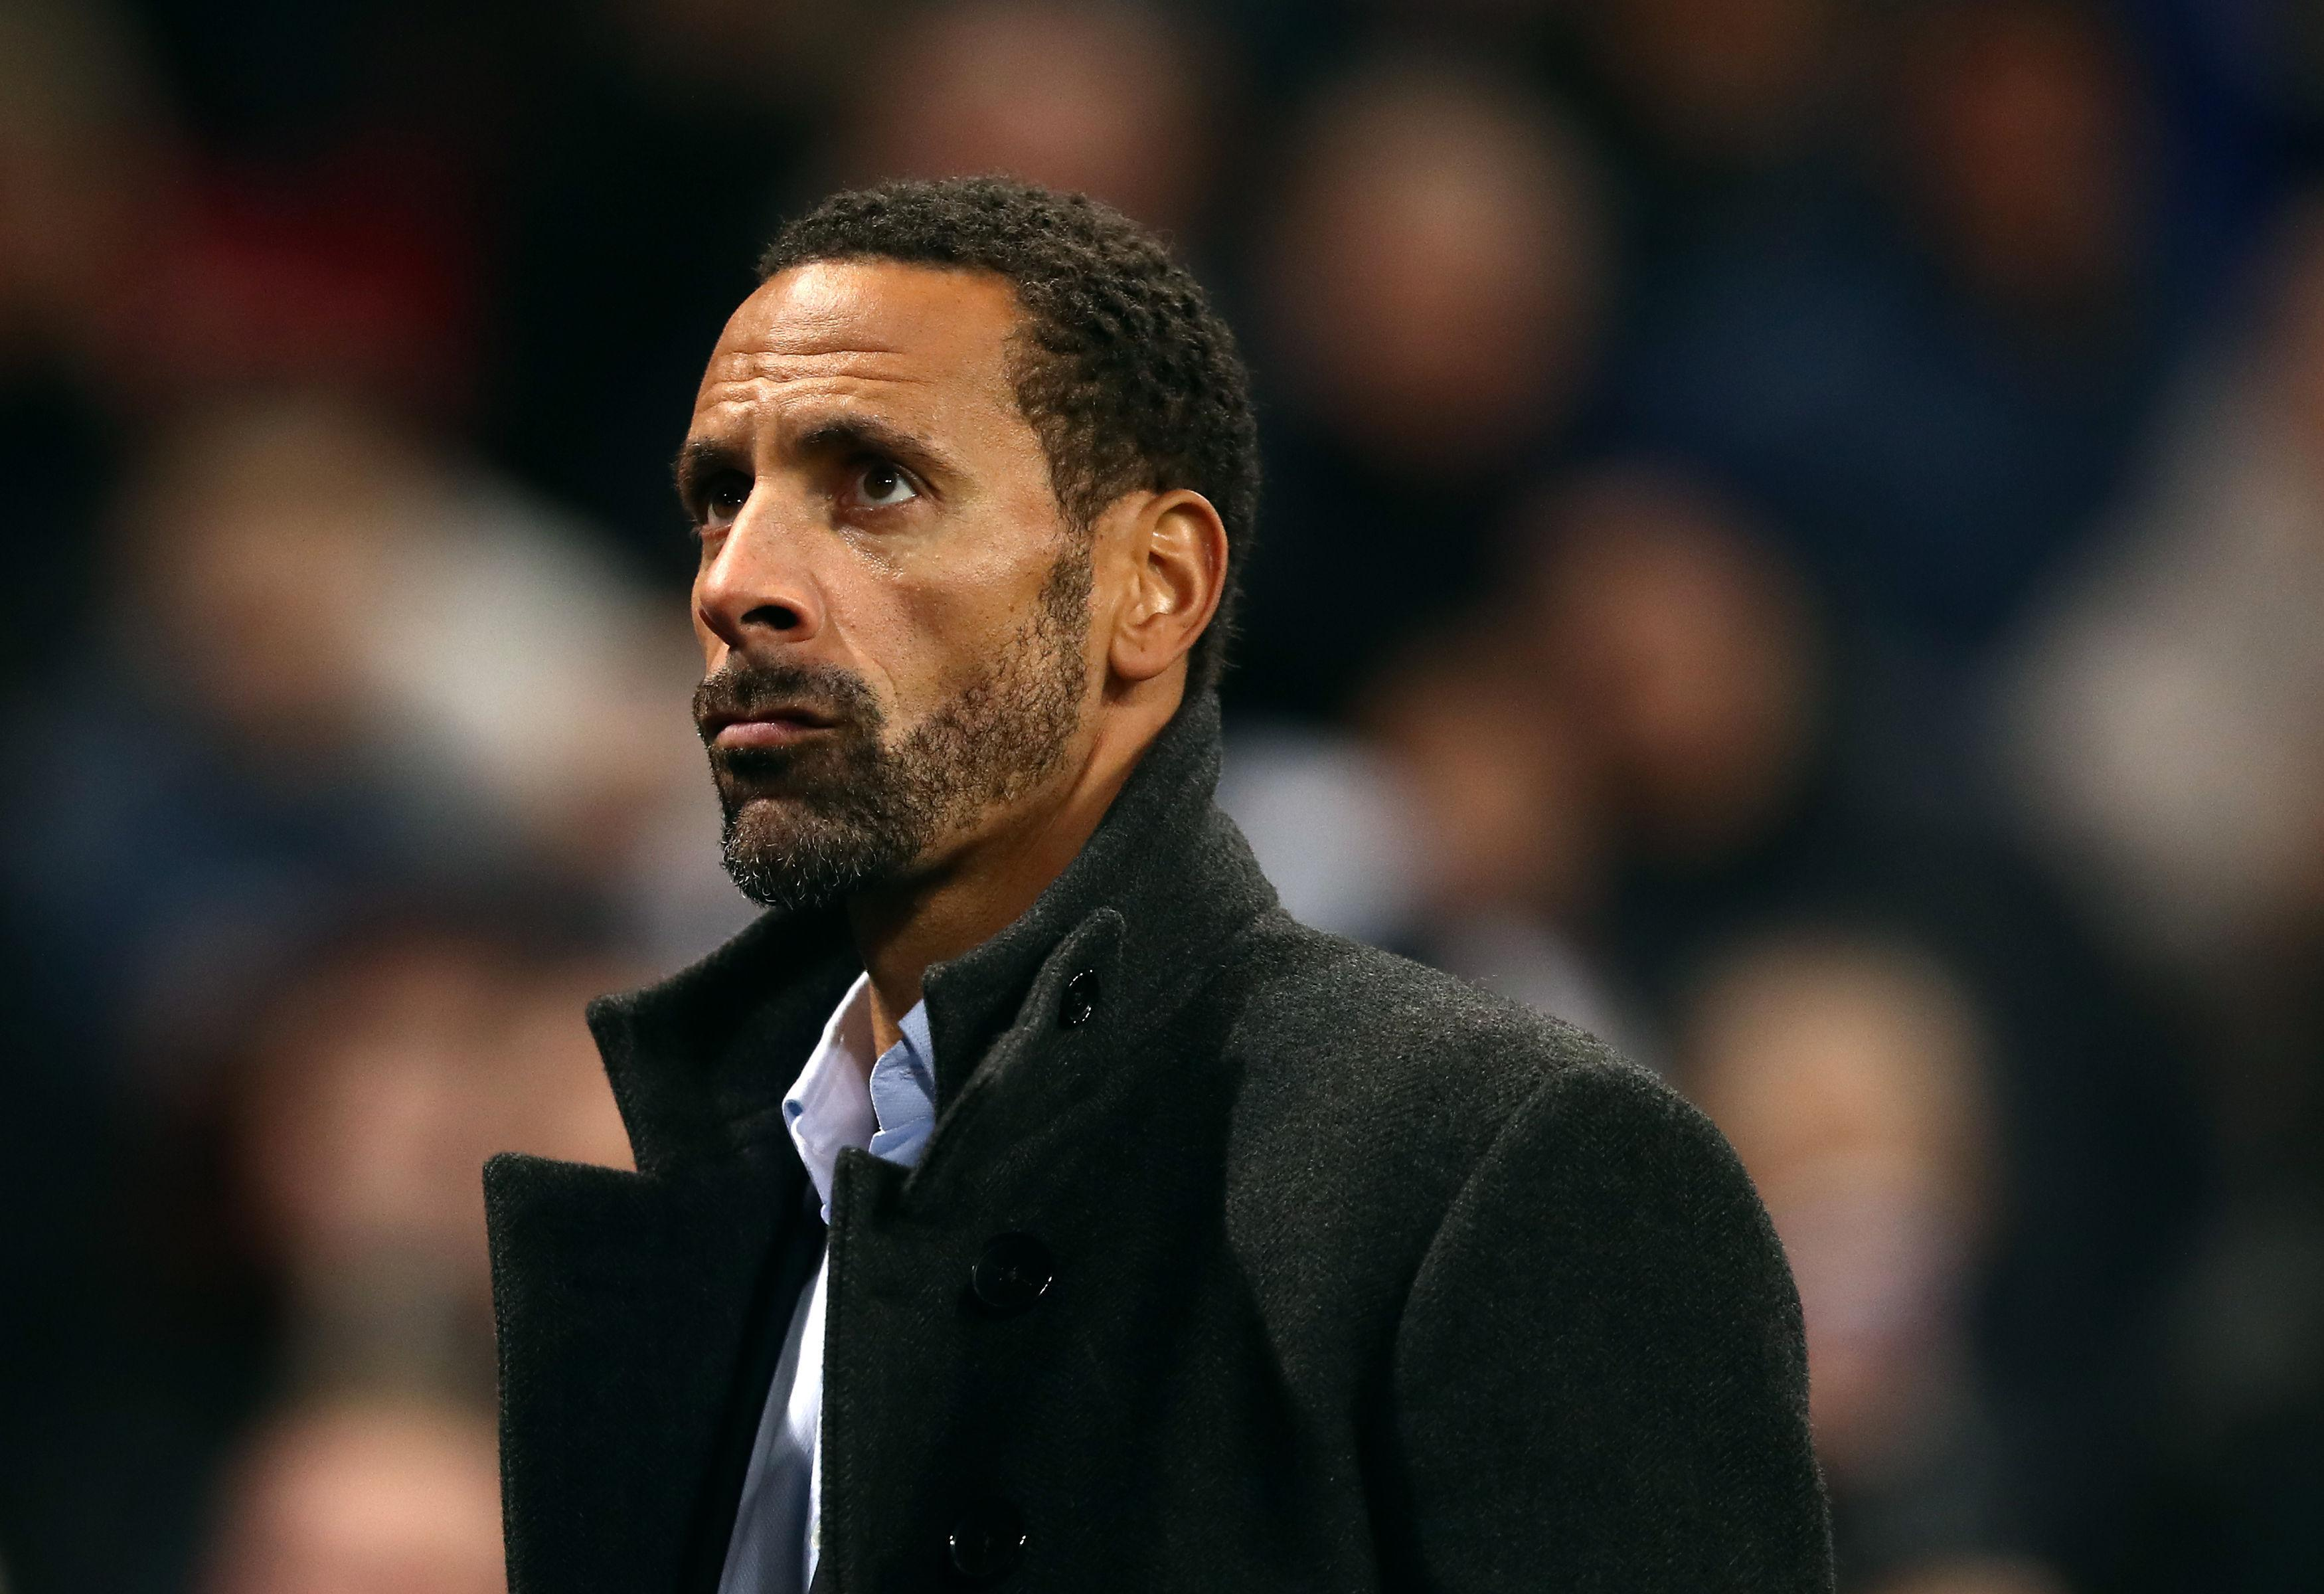 Ferdinand holds Dulwich close to his heart